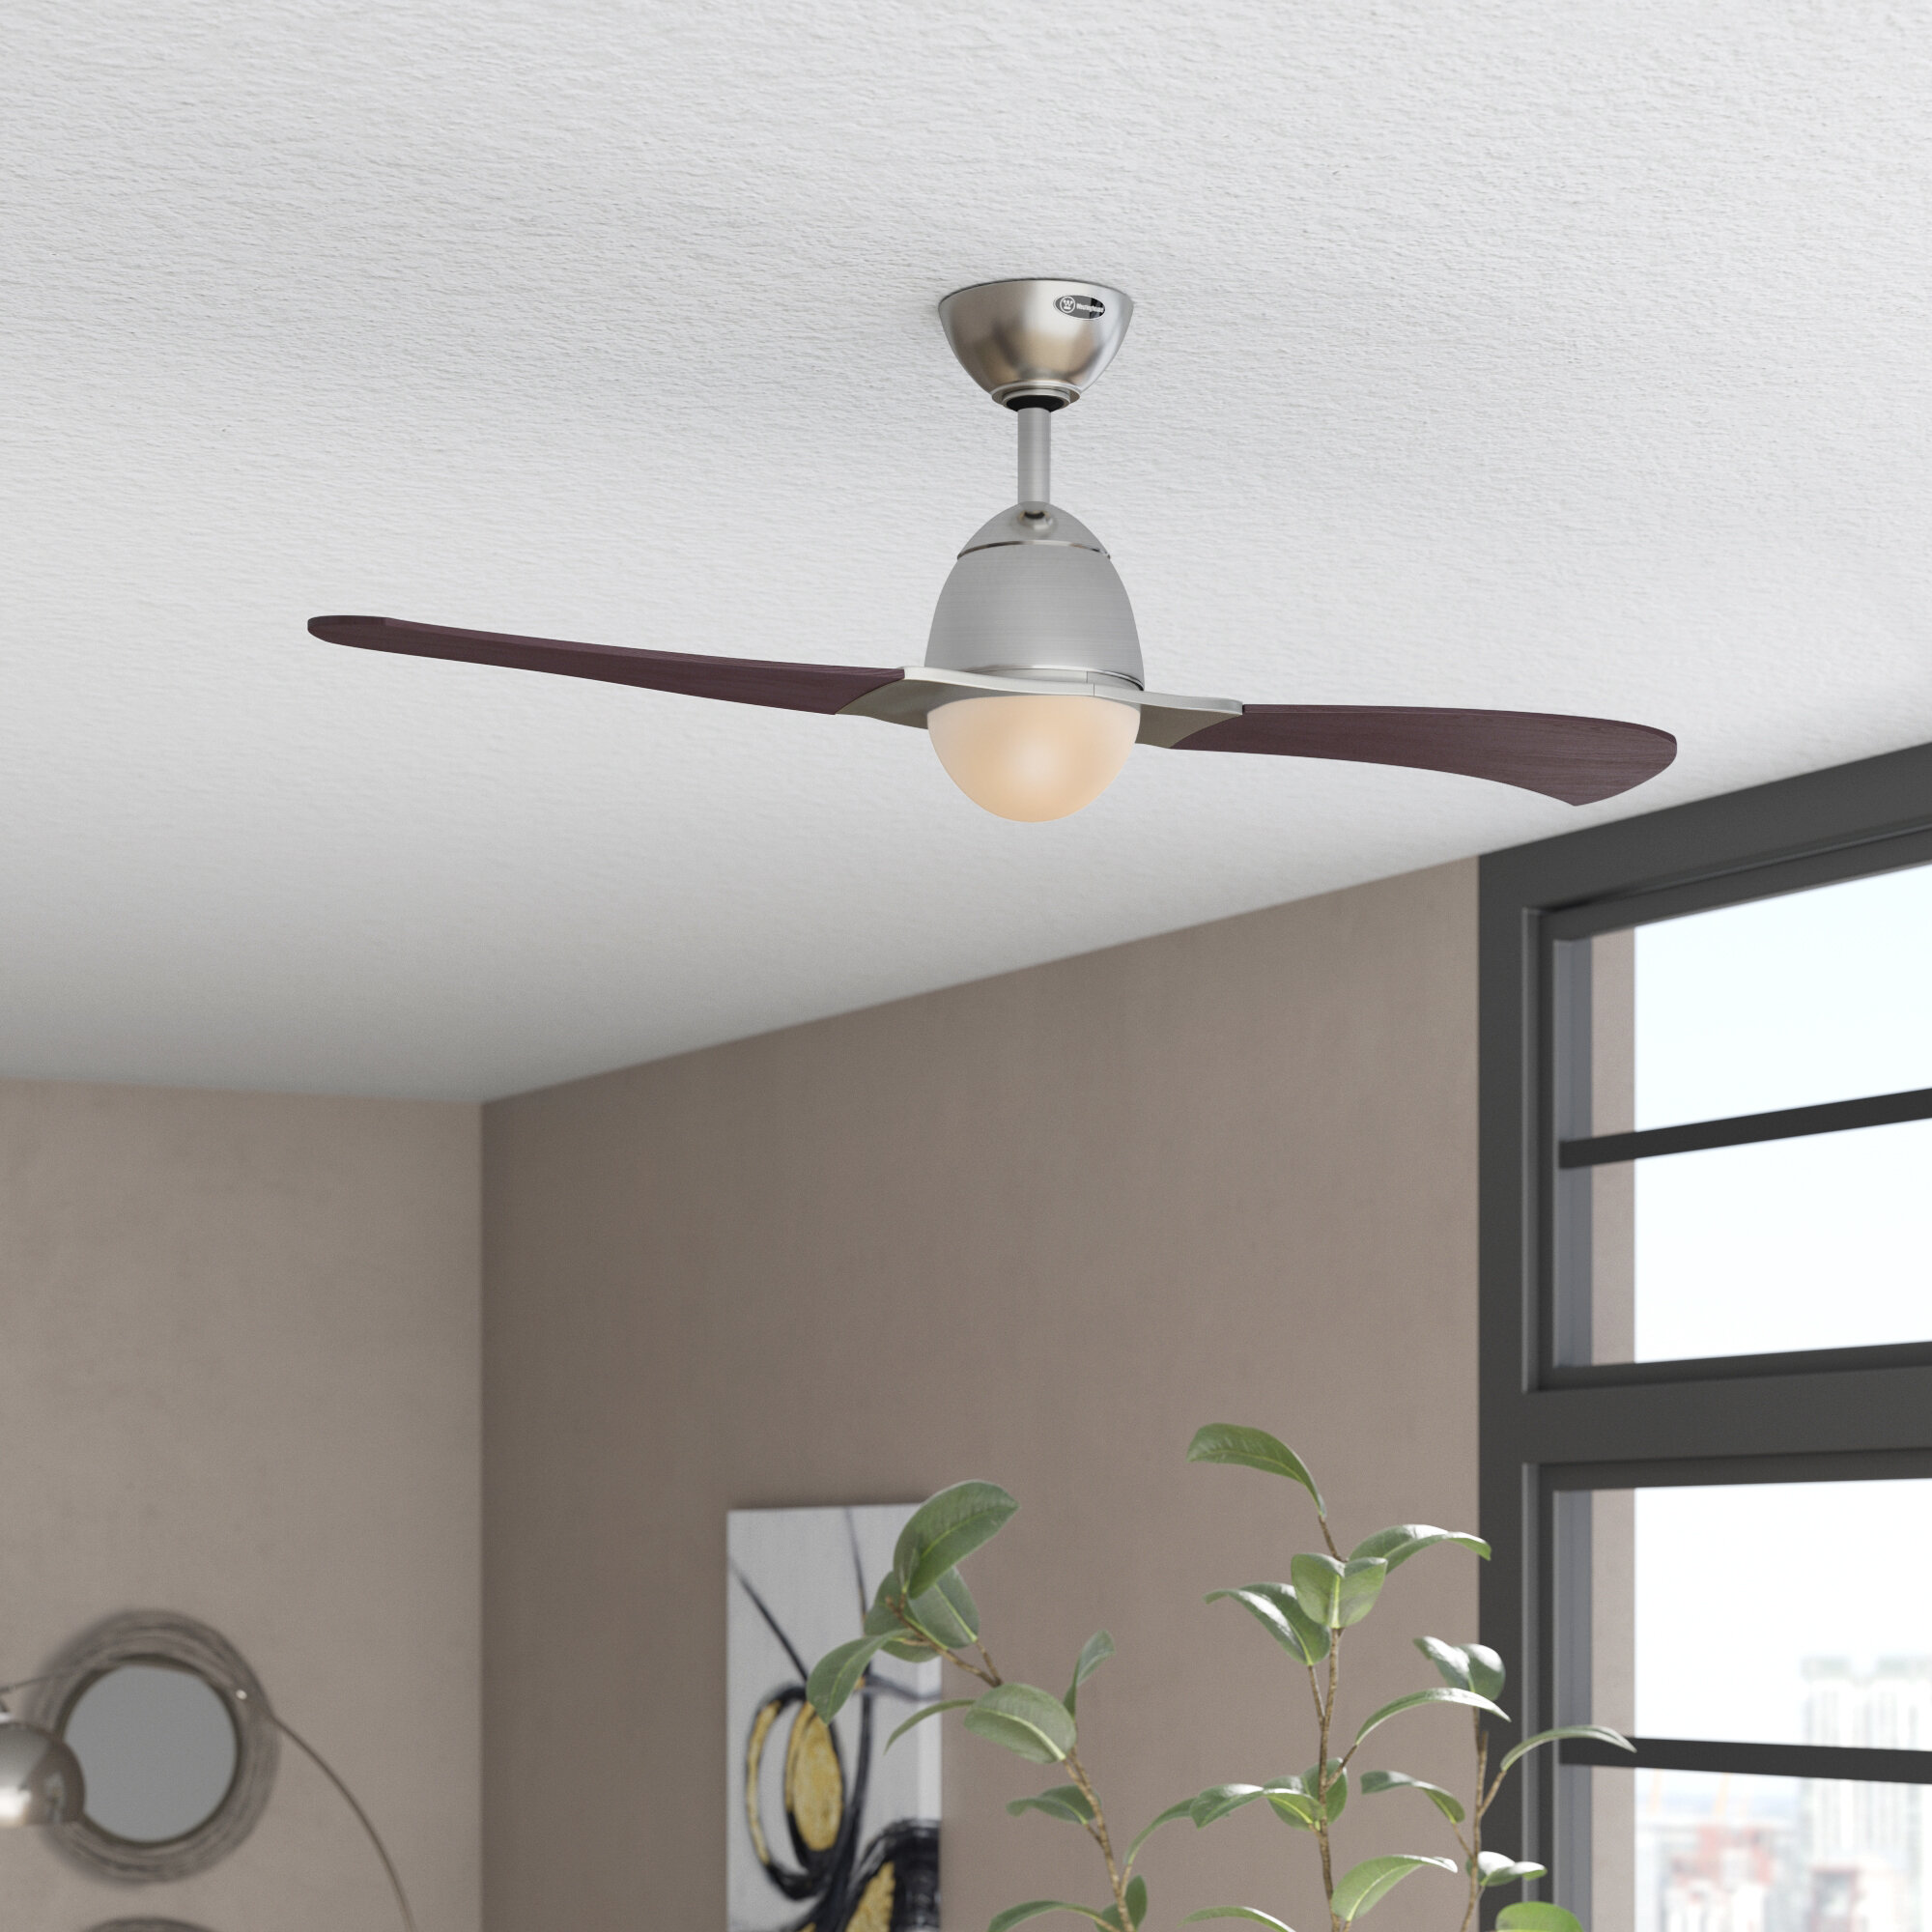 Orren Ellis 48 Amezquita 2 Blade Propeller Ceiling Fan With Remote Control And Light Kit Included Reviews Wayfair